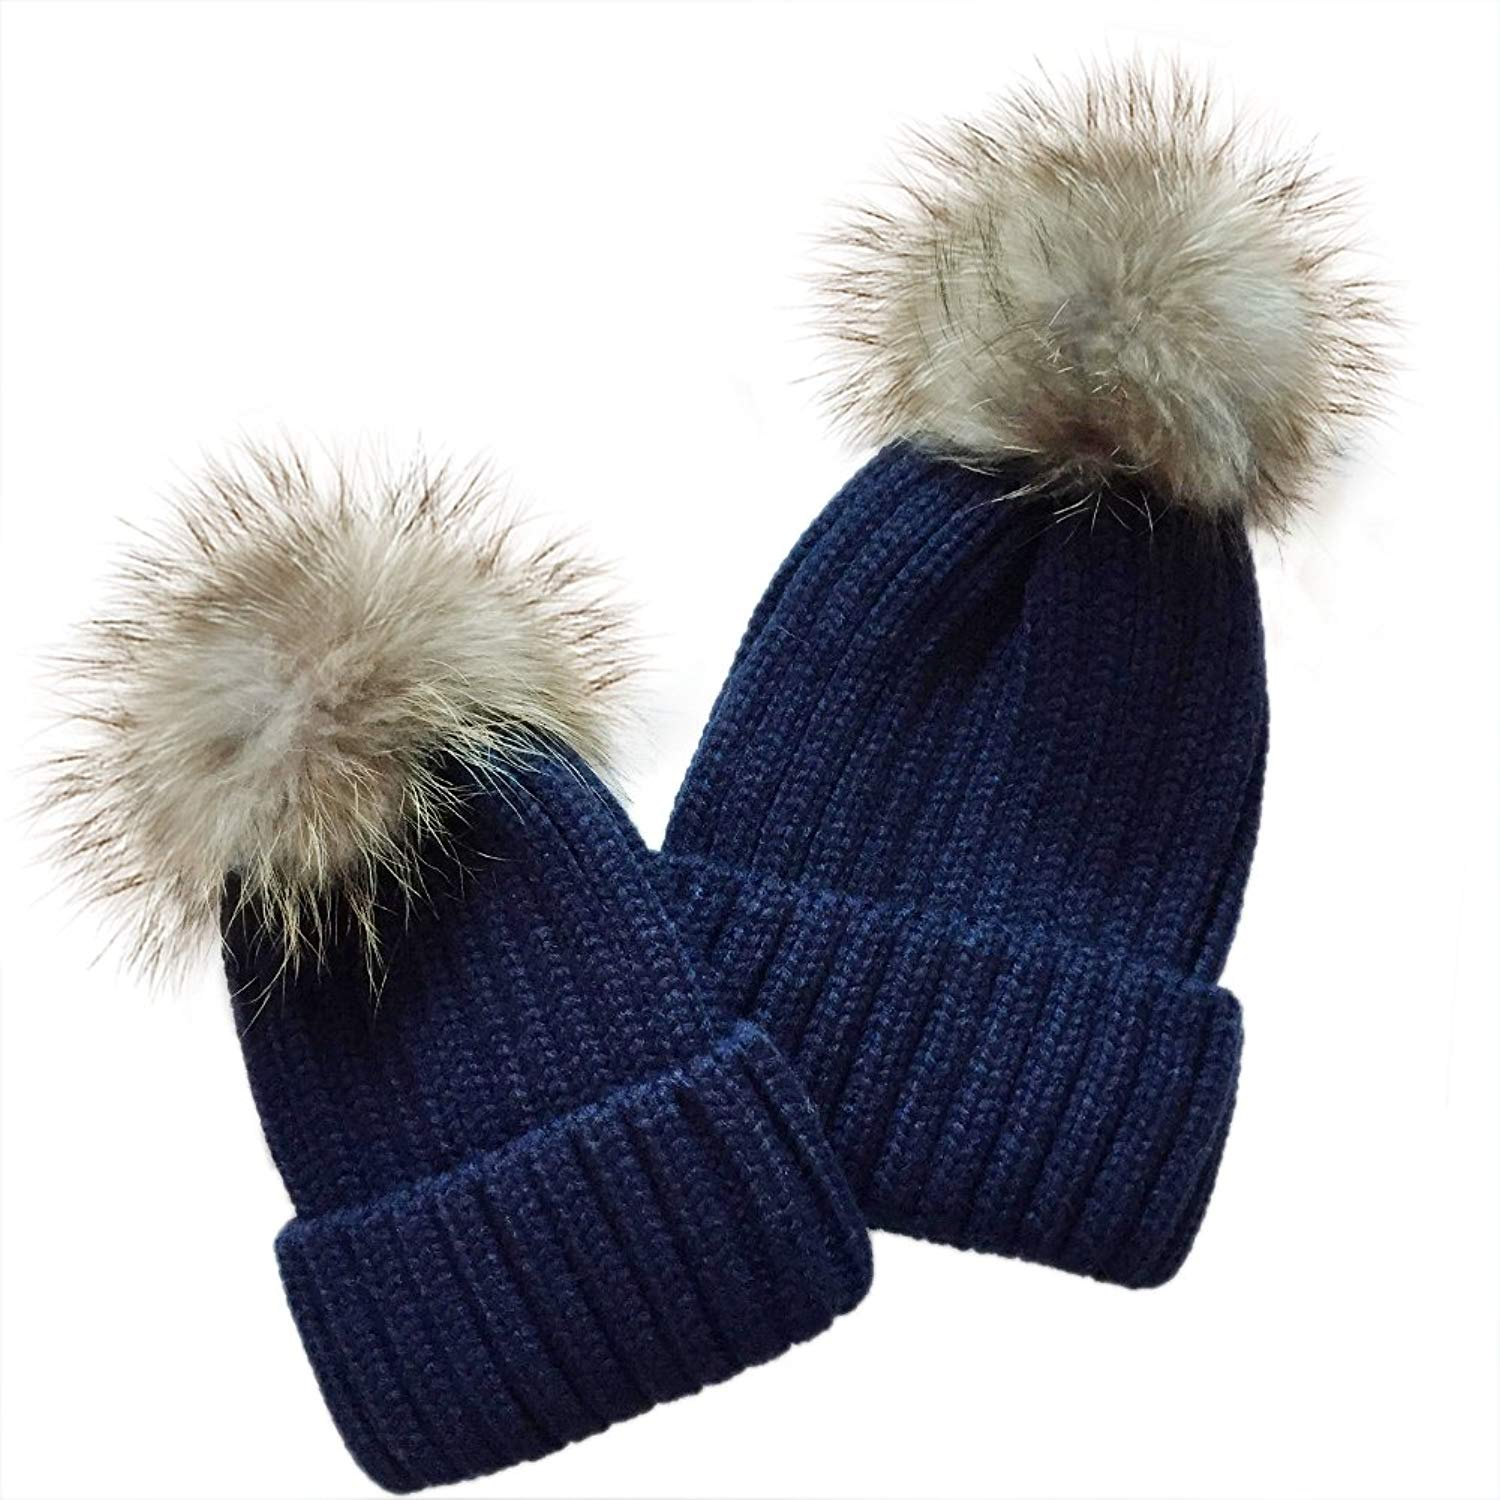 d4eafd7595a YC FASHION 2PC Parent-Child Real Raccoon Fur Pom Pom Knit Hat Stretchy  Mother Baby